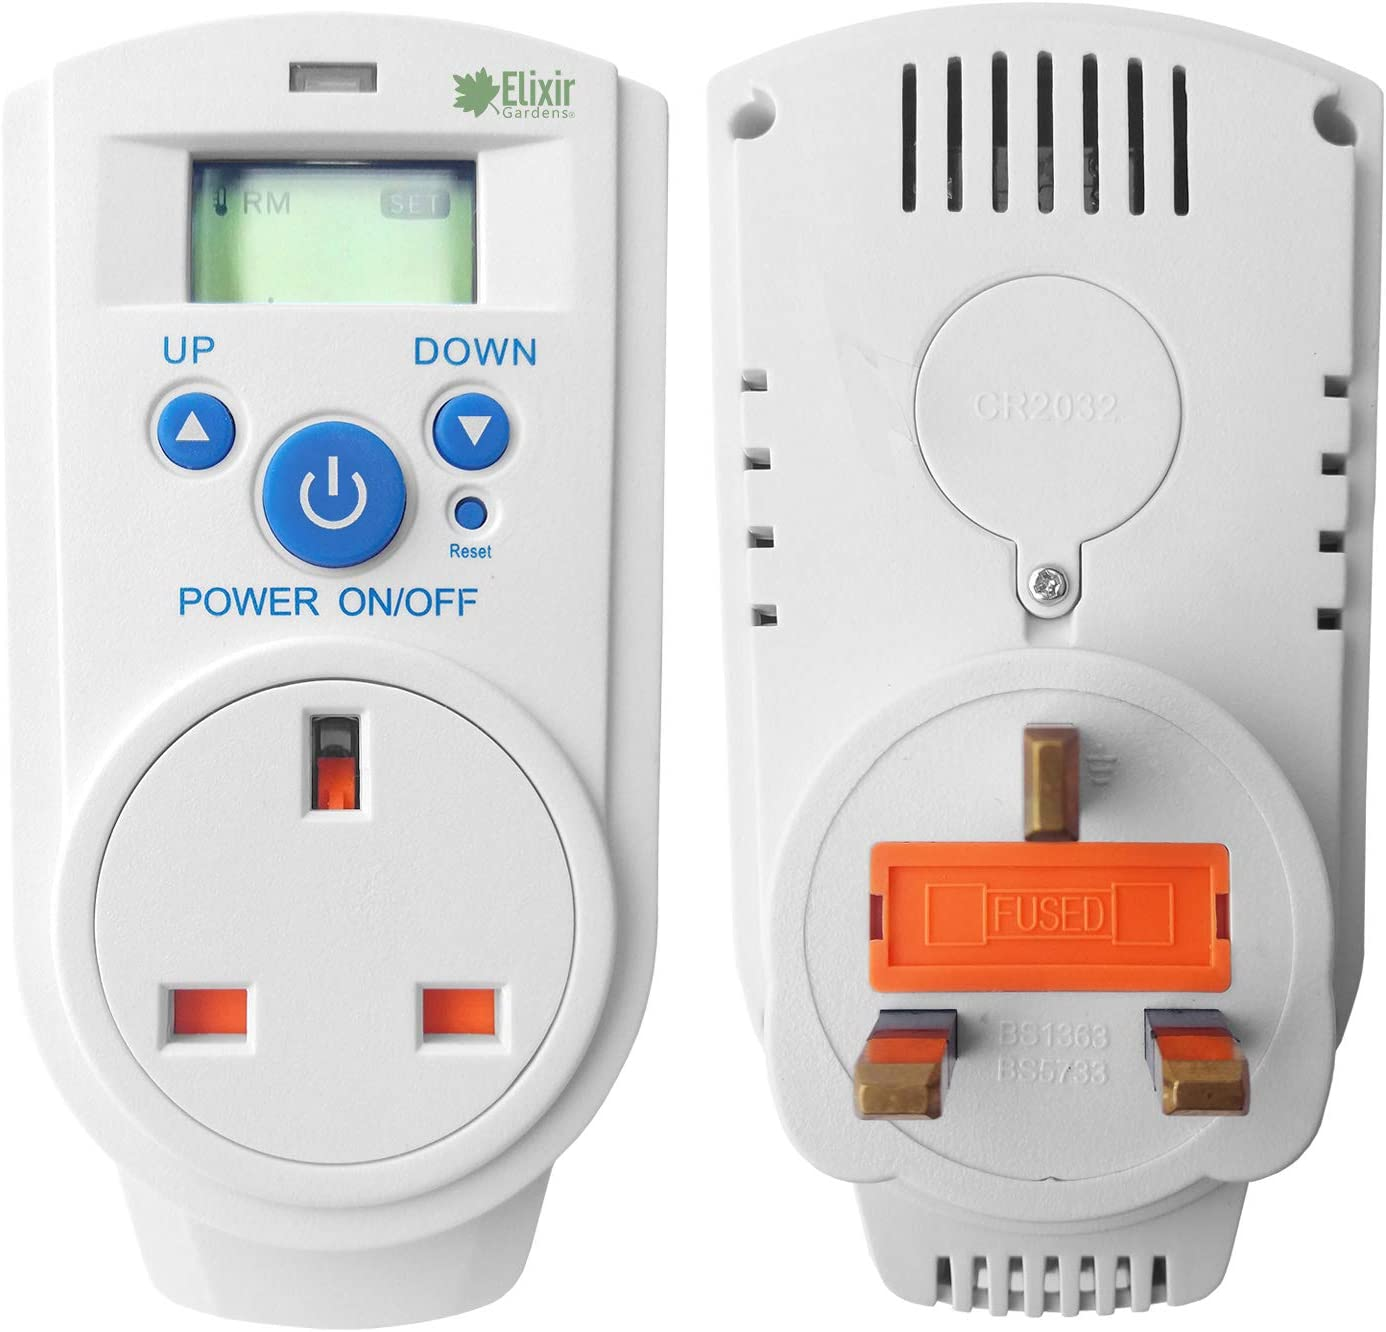 Elixir Gardens /® Plug In Thermostats Humidity Controllers Digital and Analogue Heating Cooling